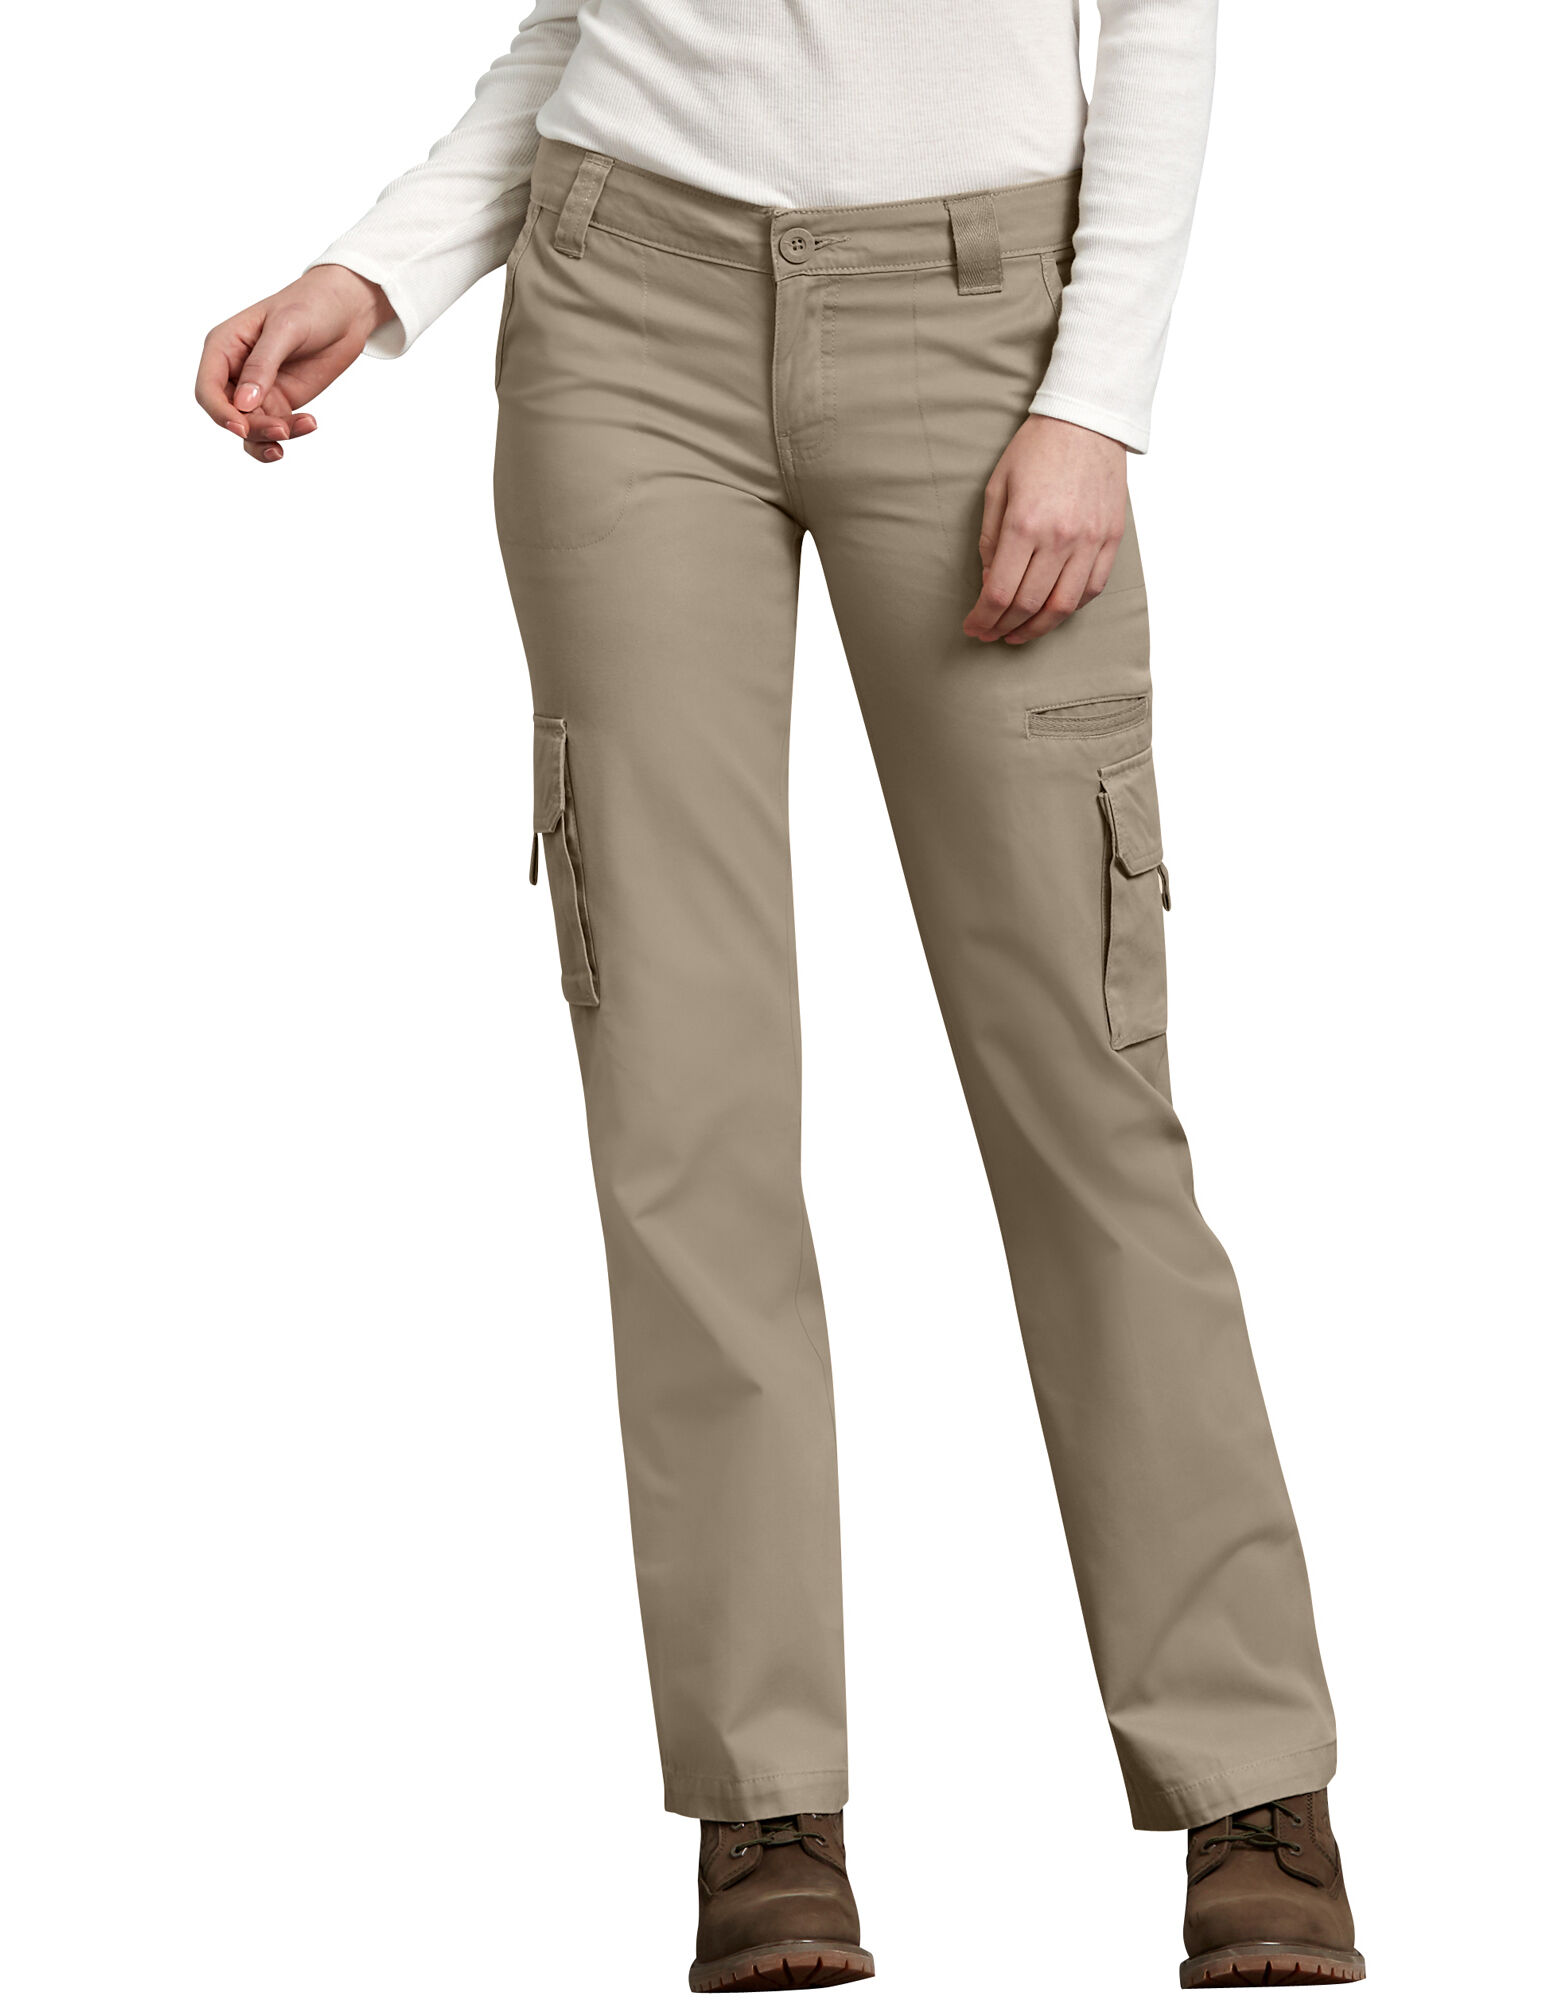 This relaxed fit soft cotton pant sits slightly below the waist with a relaxed fit through the seat and thigh. It is a versatile, functional pant featuring bellowed cargo with hook and loop closures, a multi-use side pocket and back flap pockets with snap closures.